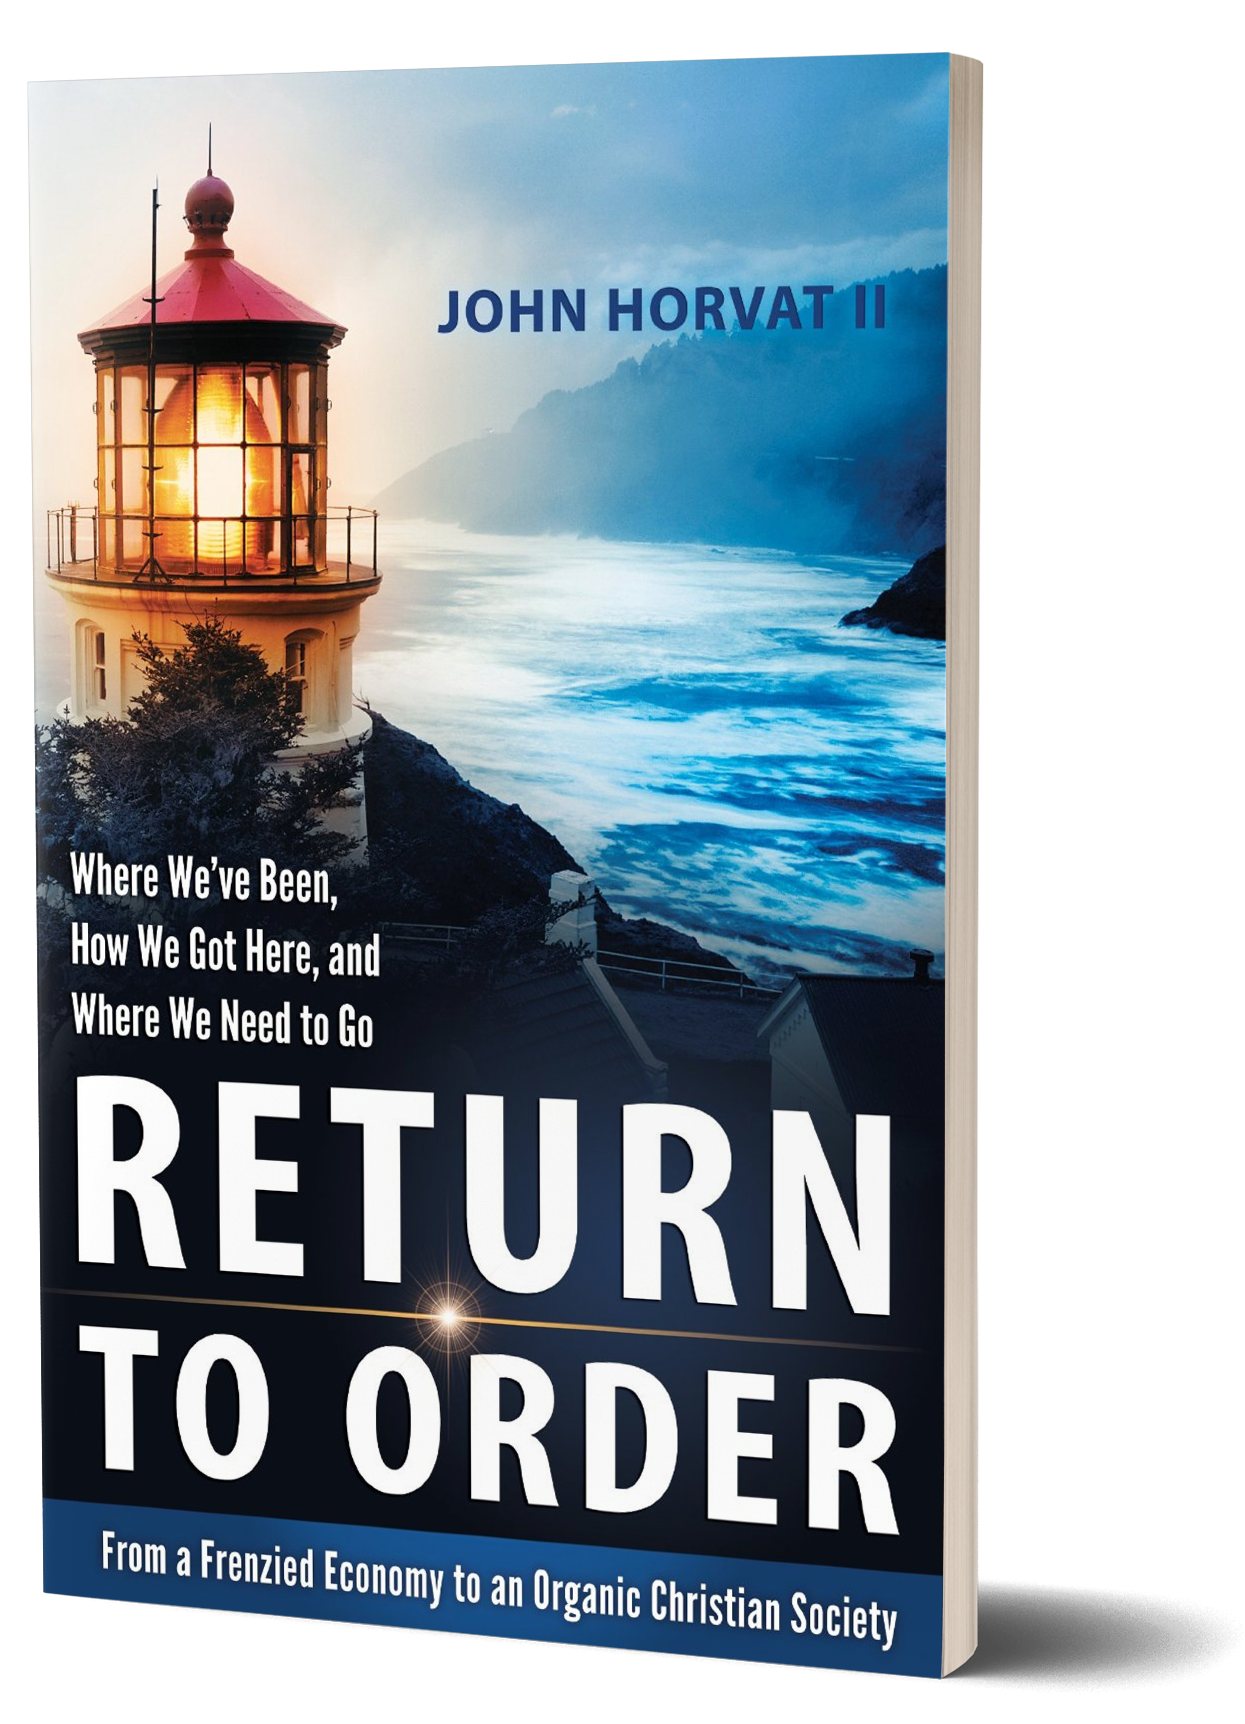 return-to-order-book-cropped Free Book - Return to Order